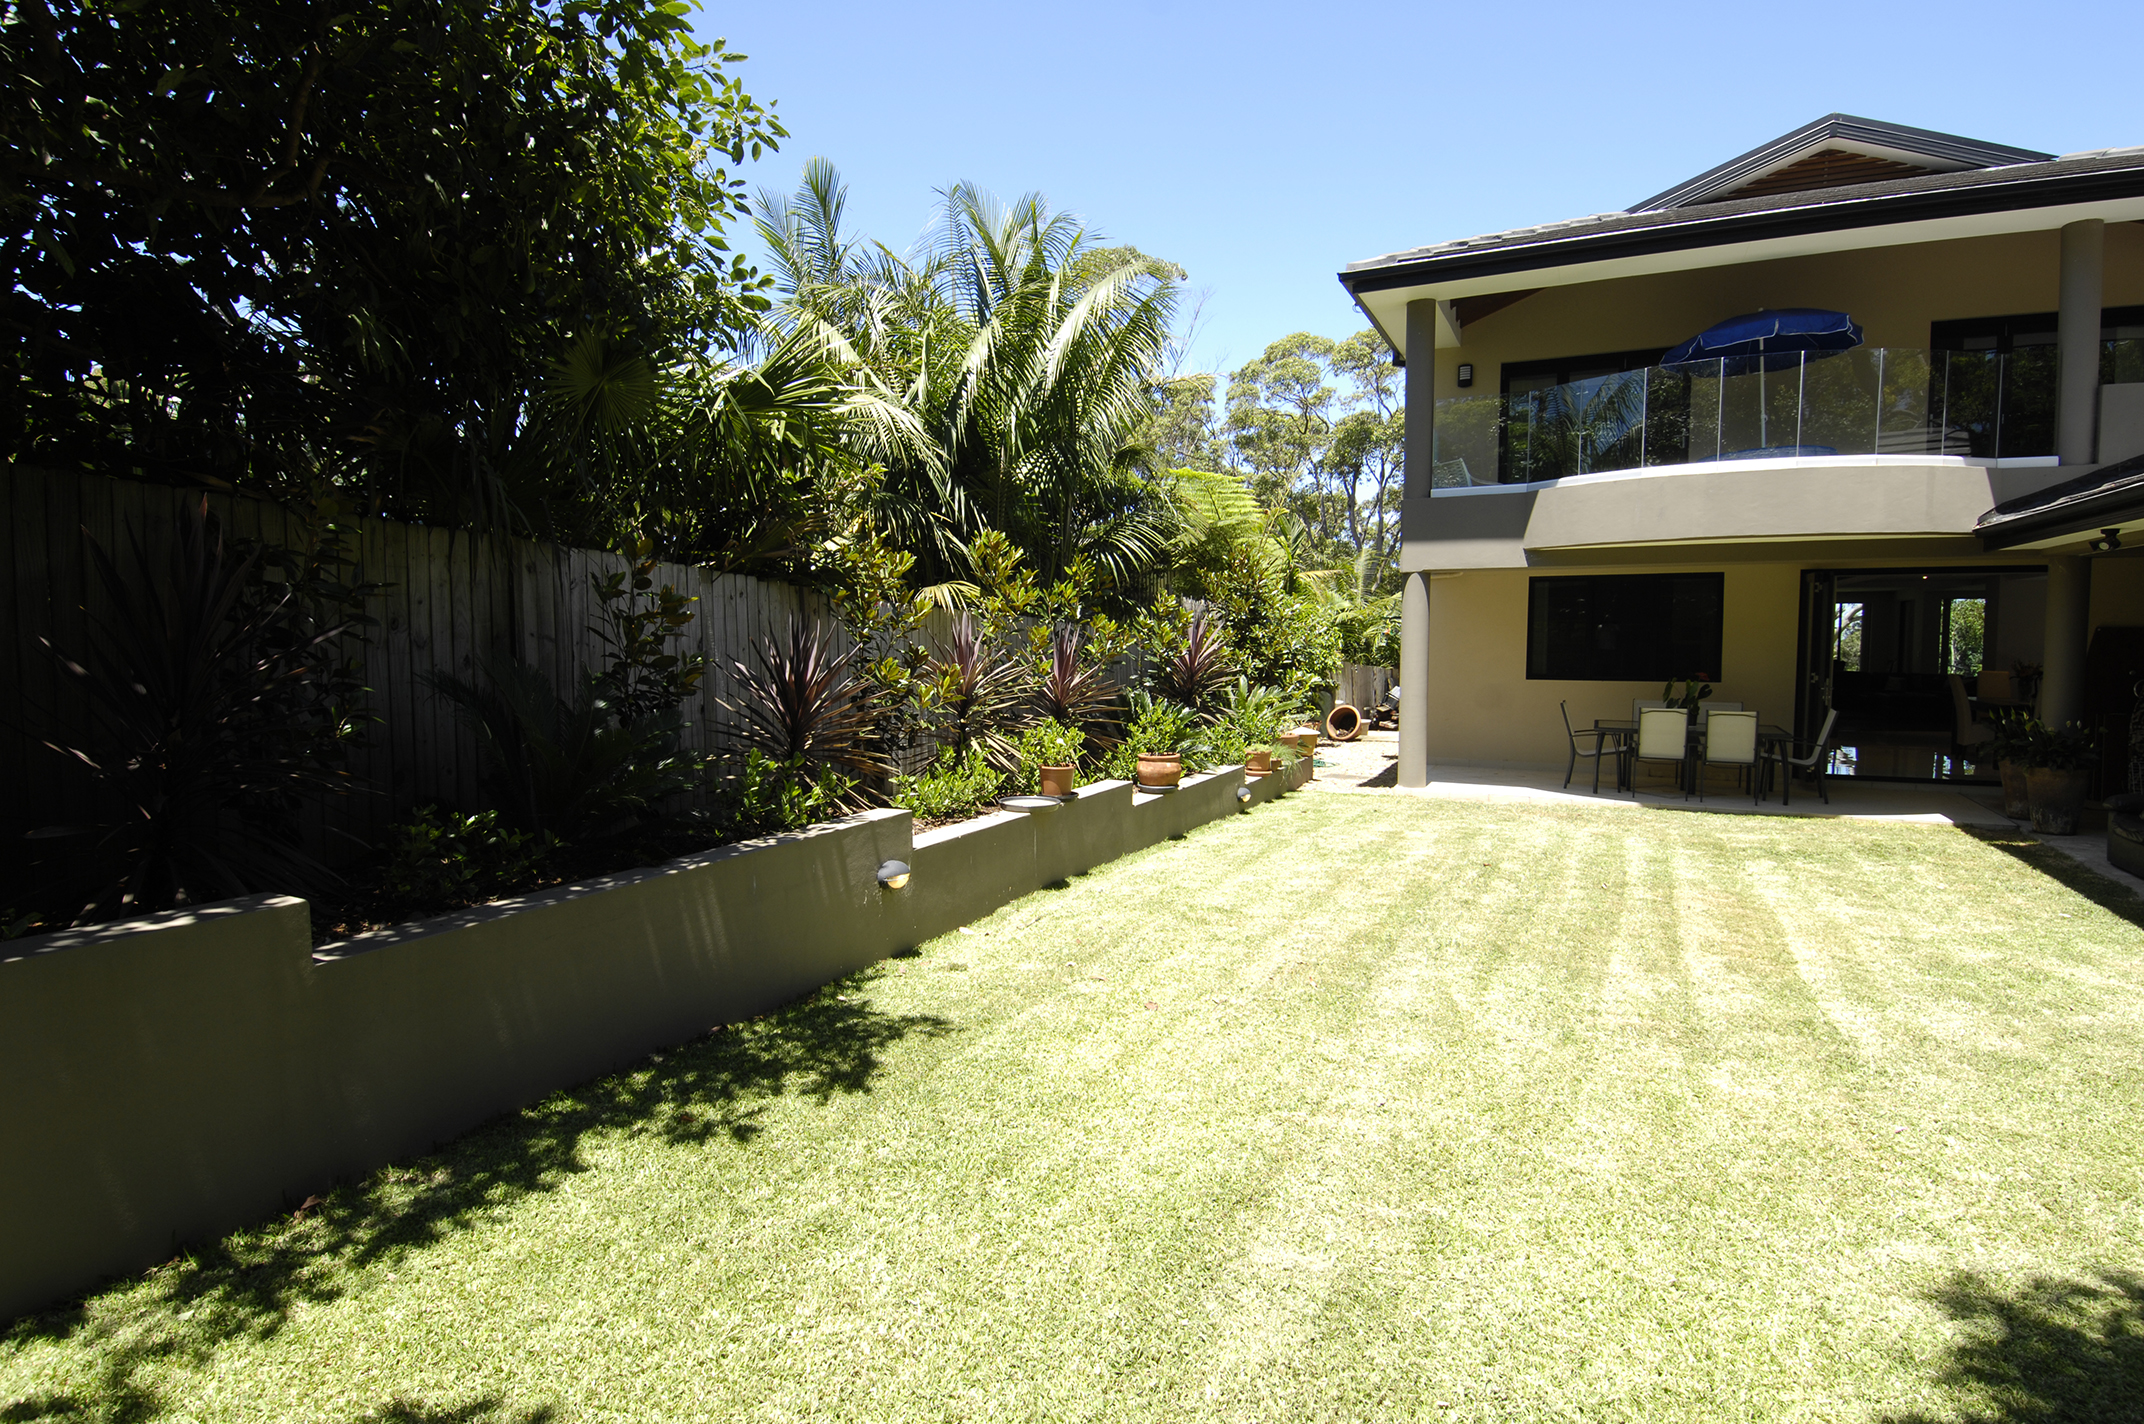 2107 Bilgola Plateau NSW,4 Bedrooms Bedrooms,4 BathroomsBathrooms,House,Bilgola Plateau NSW,1004